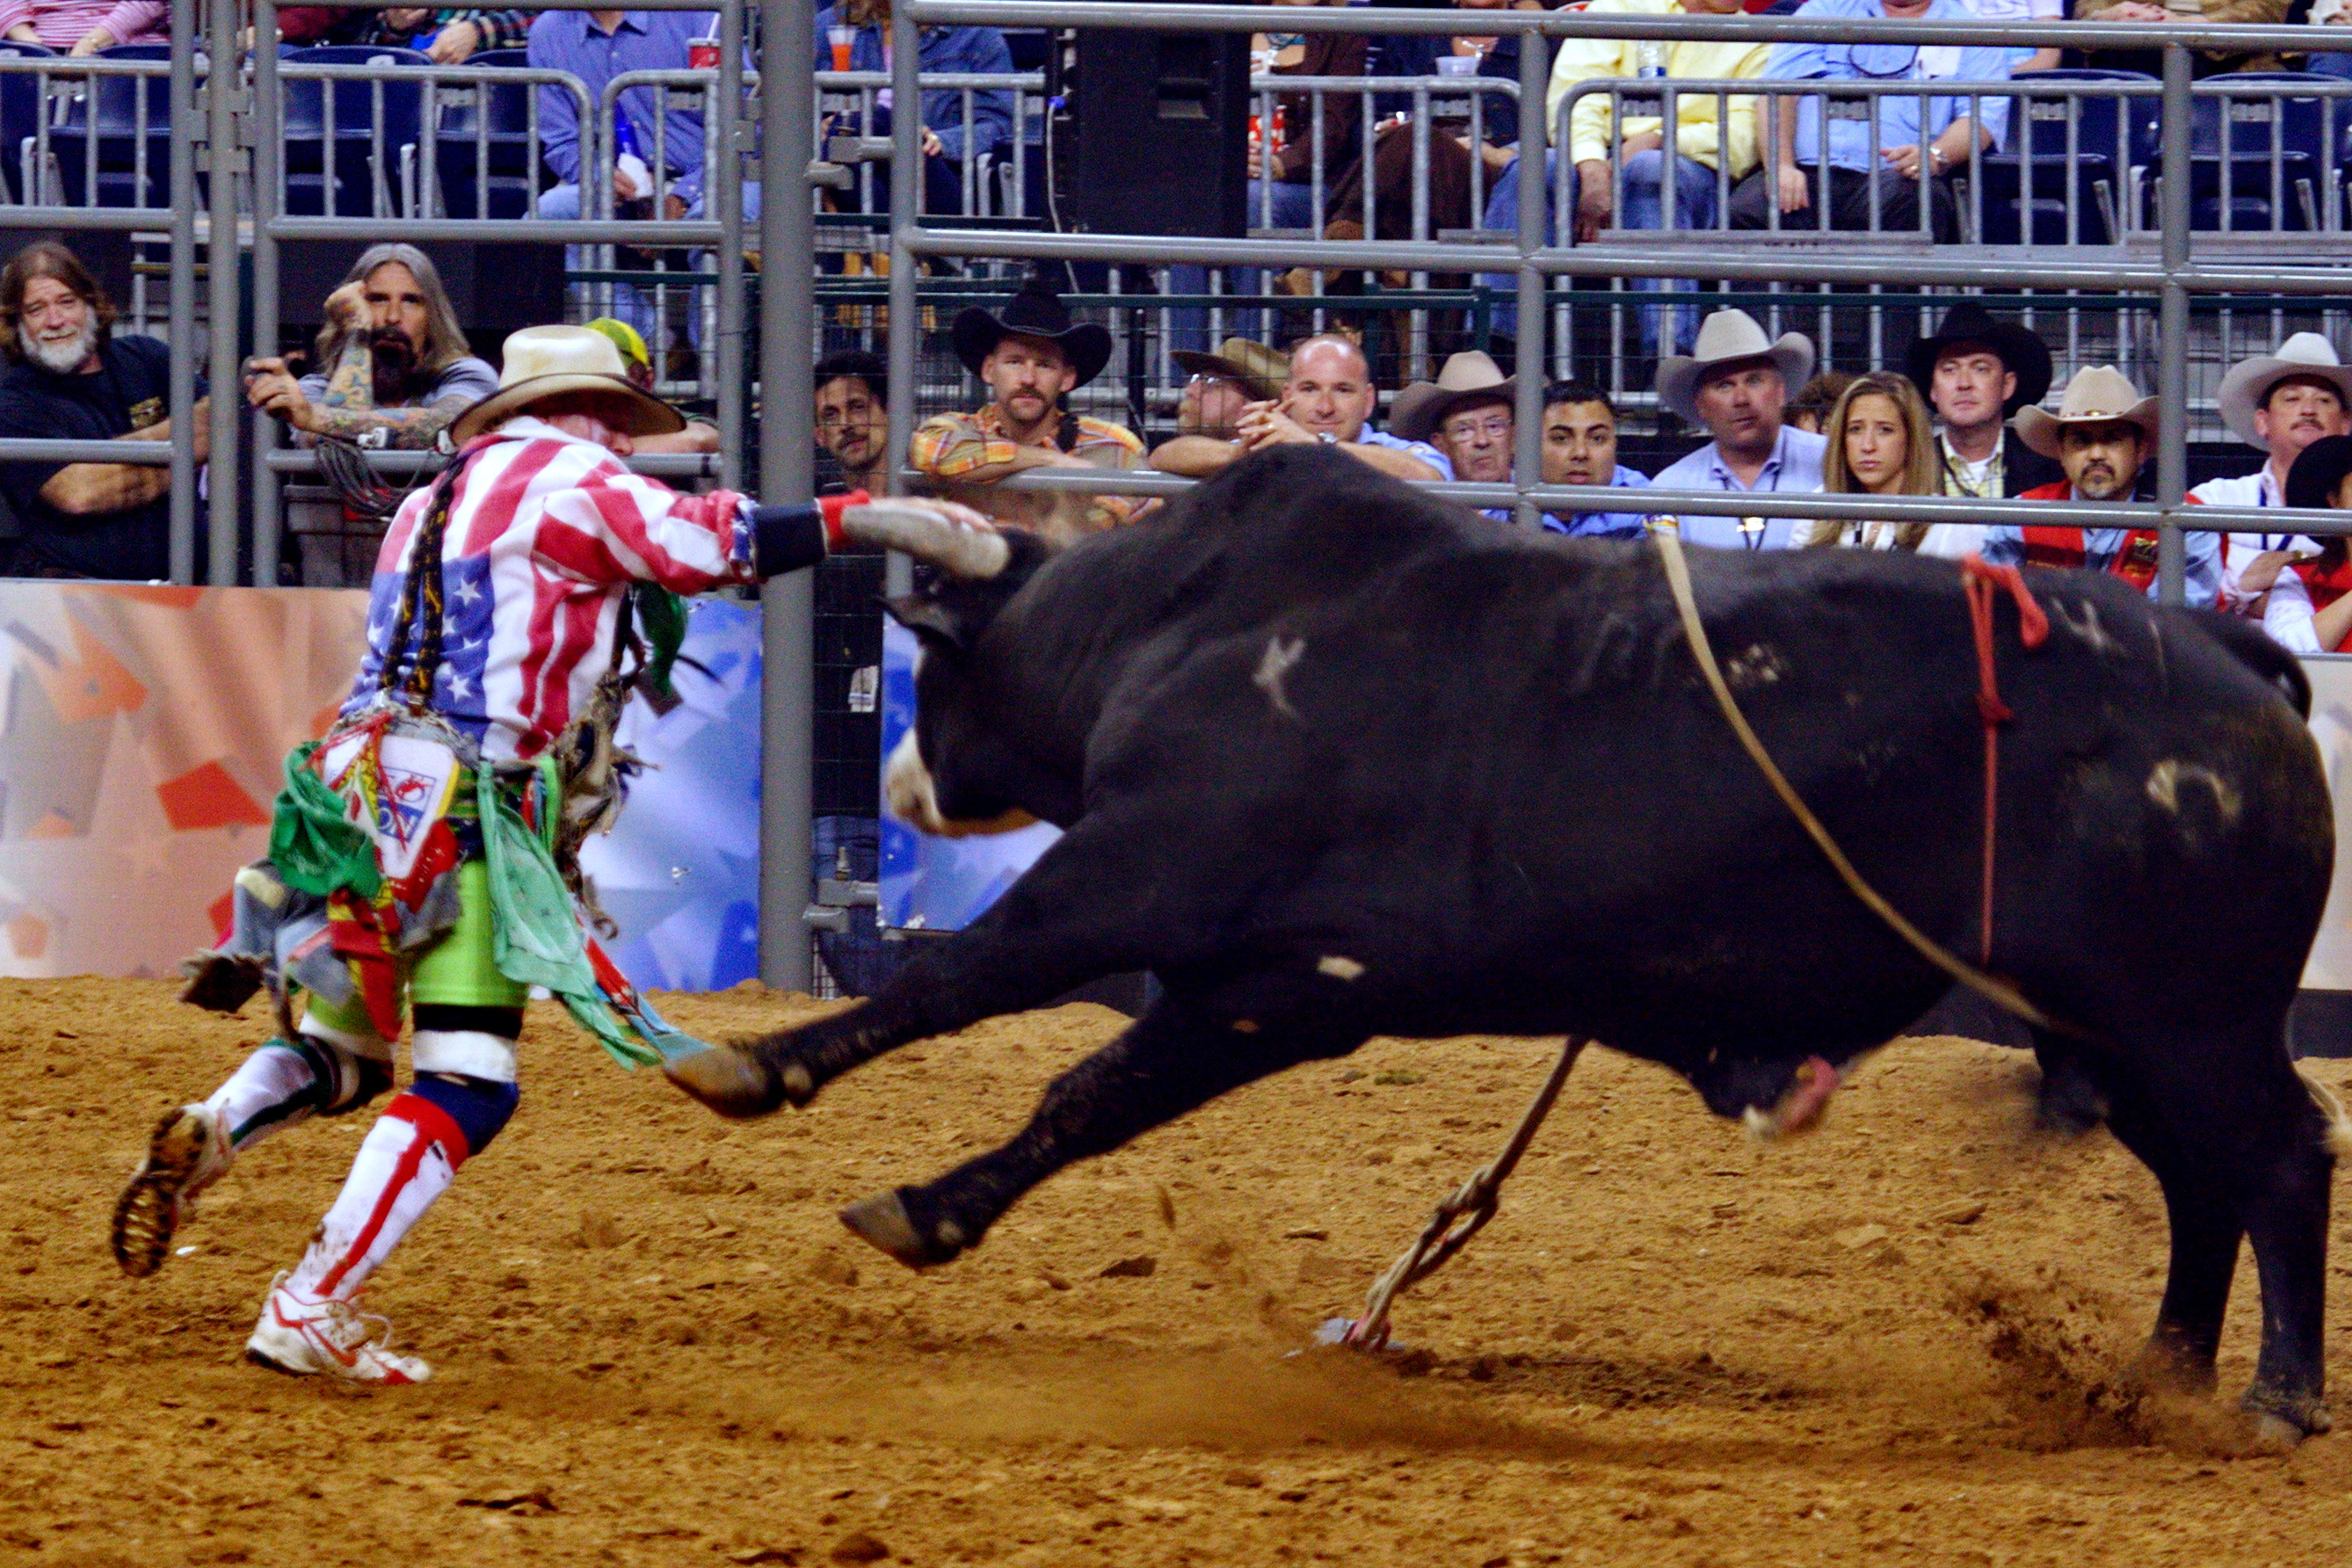 Rodeo Bull fighter